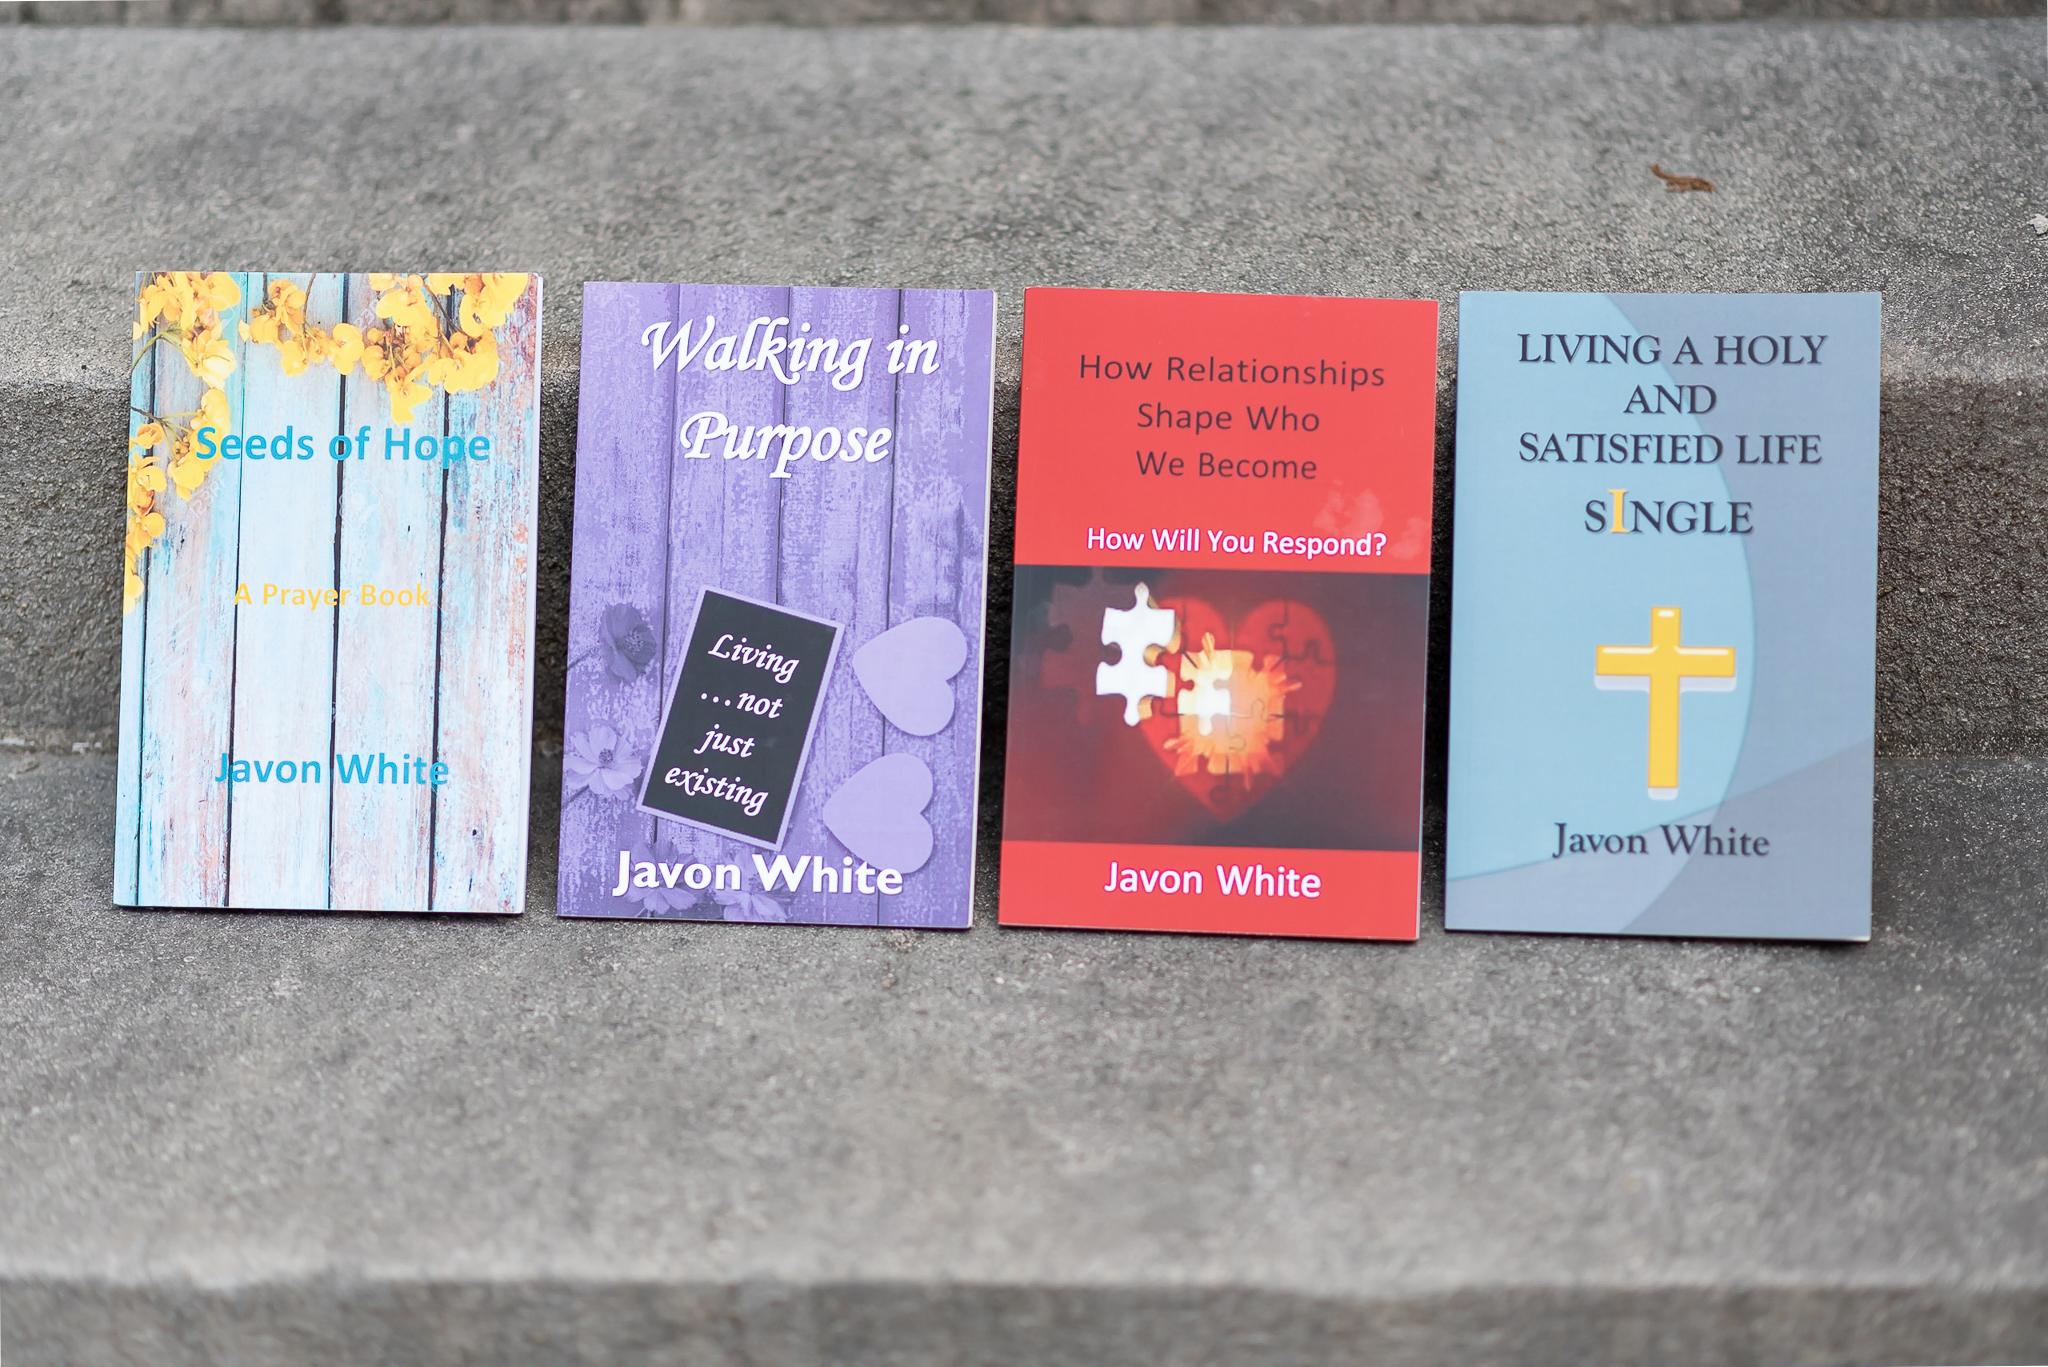 Javon's book list - Seeds of HopeWalking in Purpose: Living…Not Just ExistingHow Relationships Shape Who We BecomeLiving A Holy And Satisfied Life SingleDraw Near to God